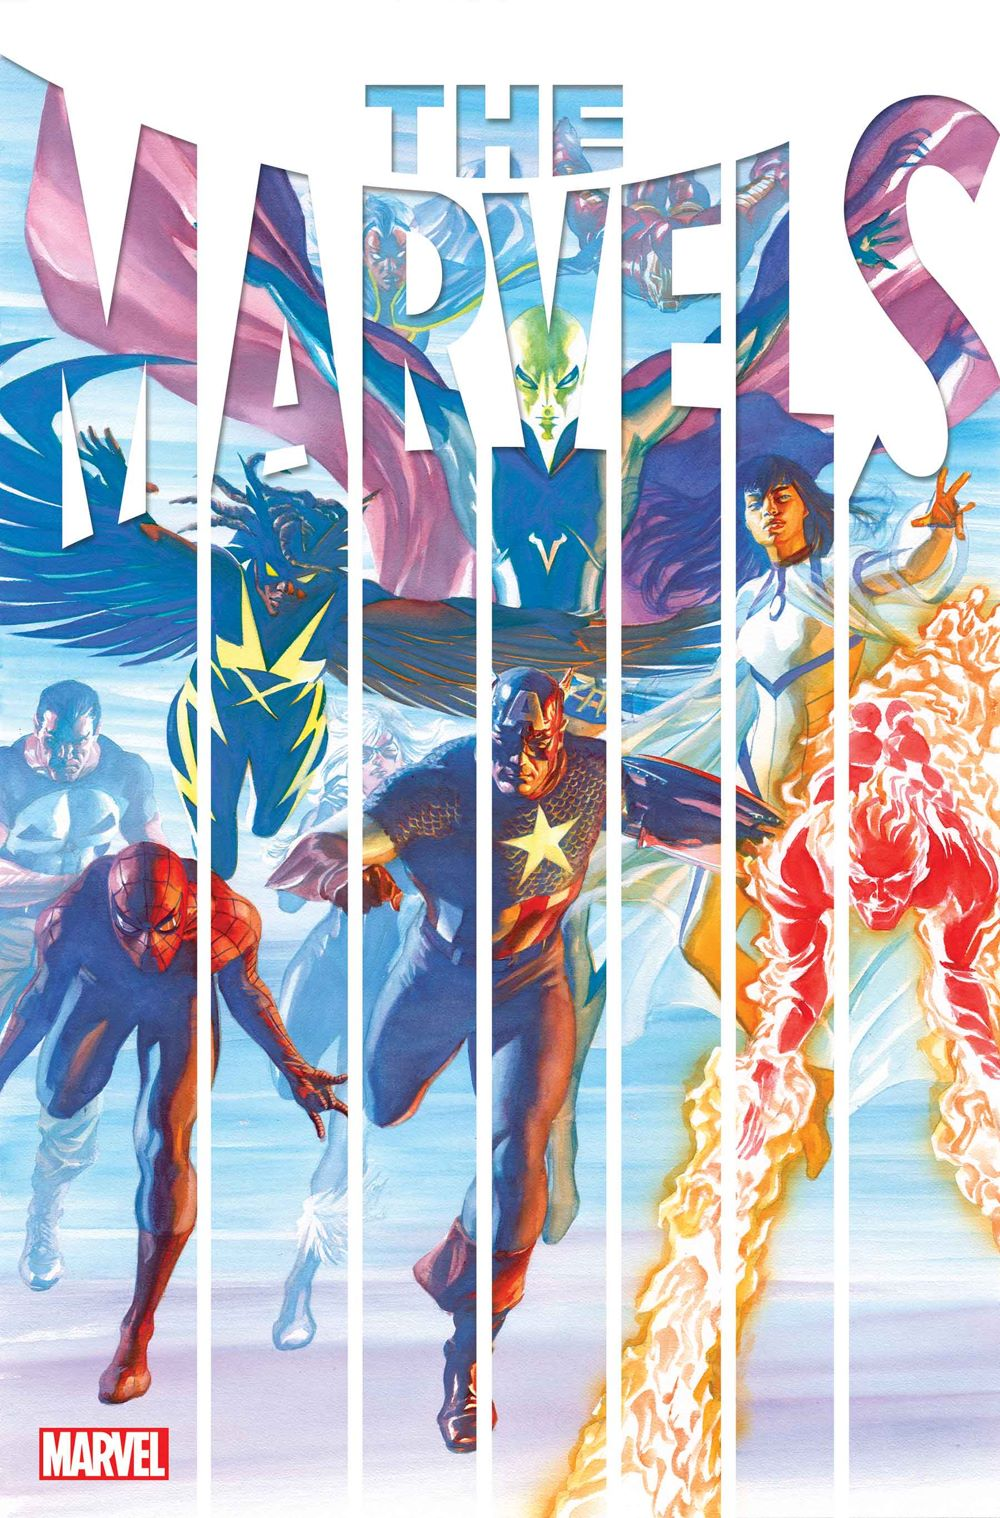 MARVELS_2021001_Cov THE MARVELS gives Kurt Busiek full access to the Marvel Universe